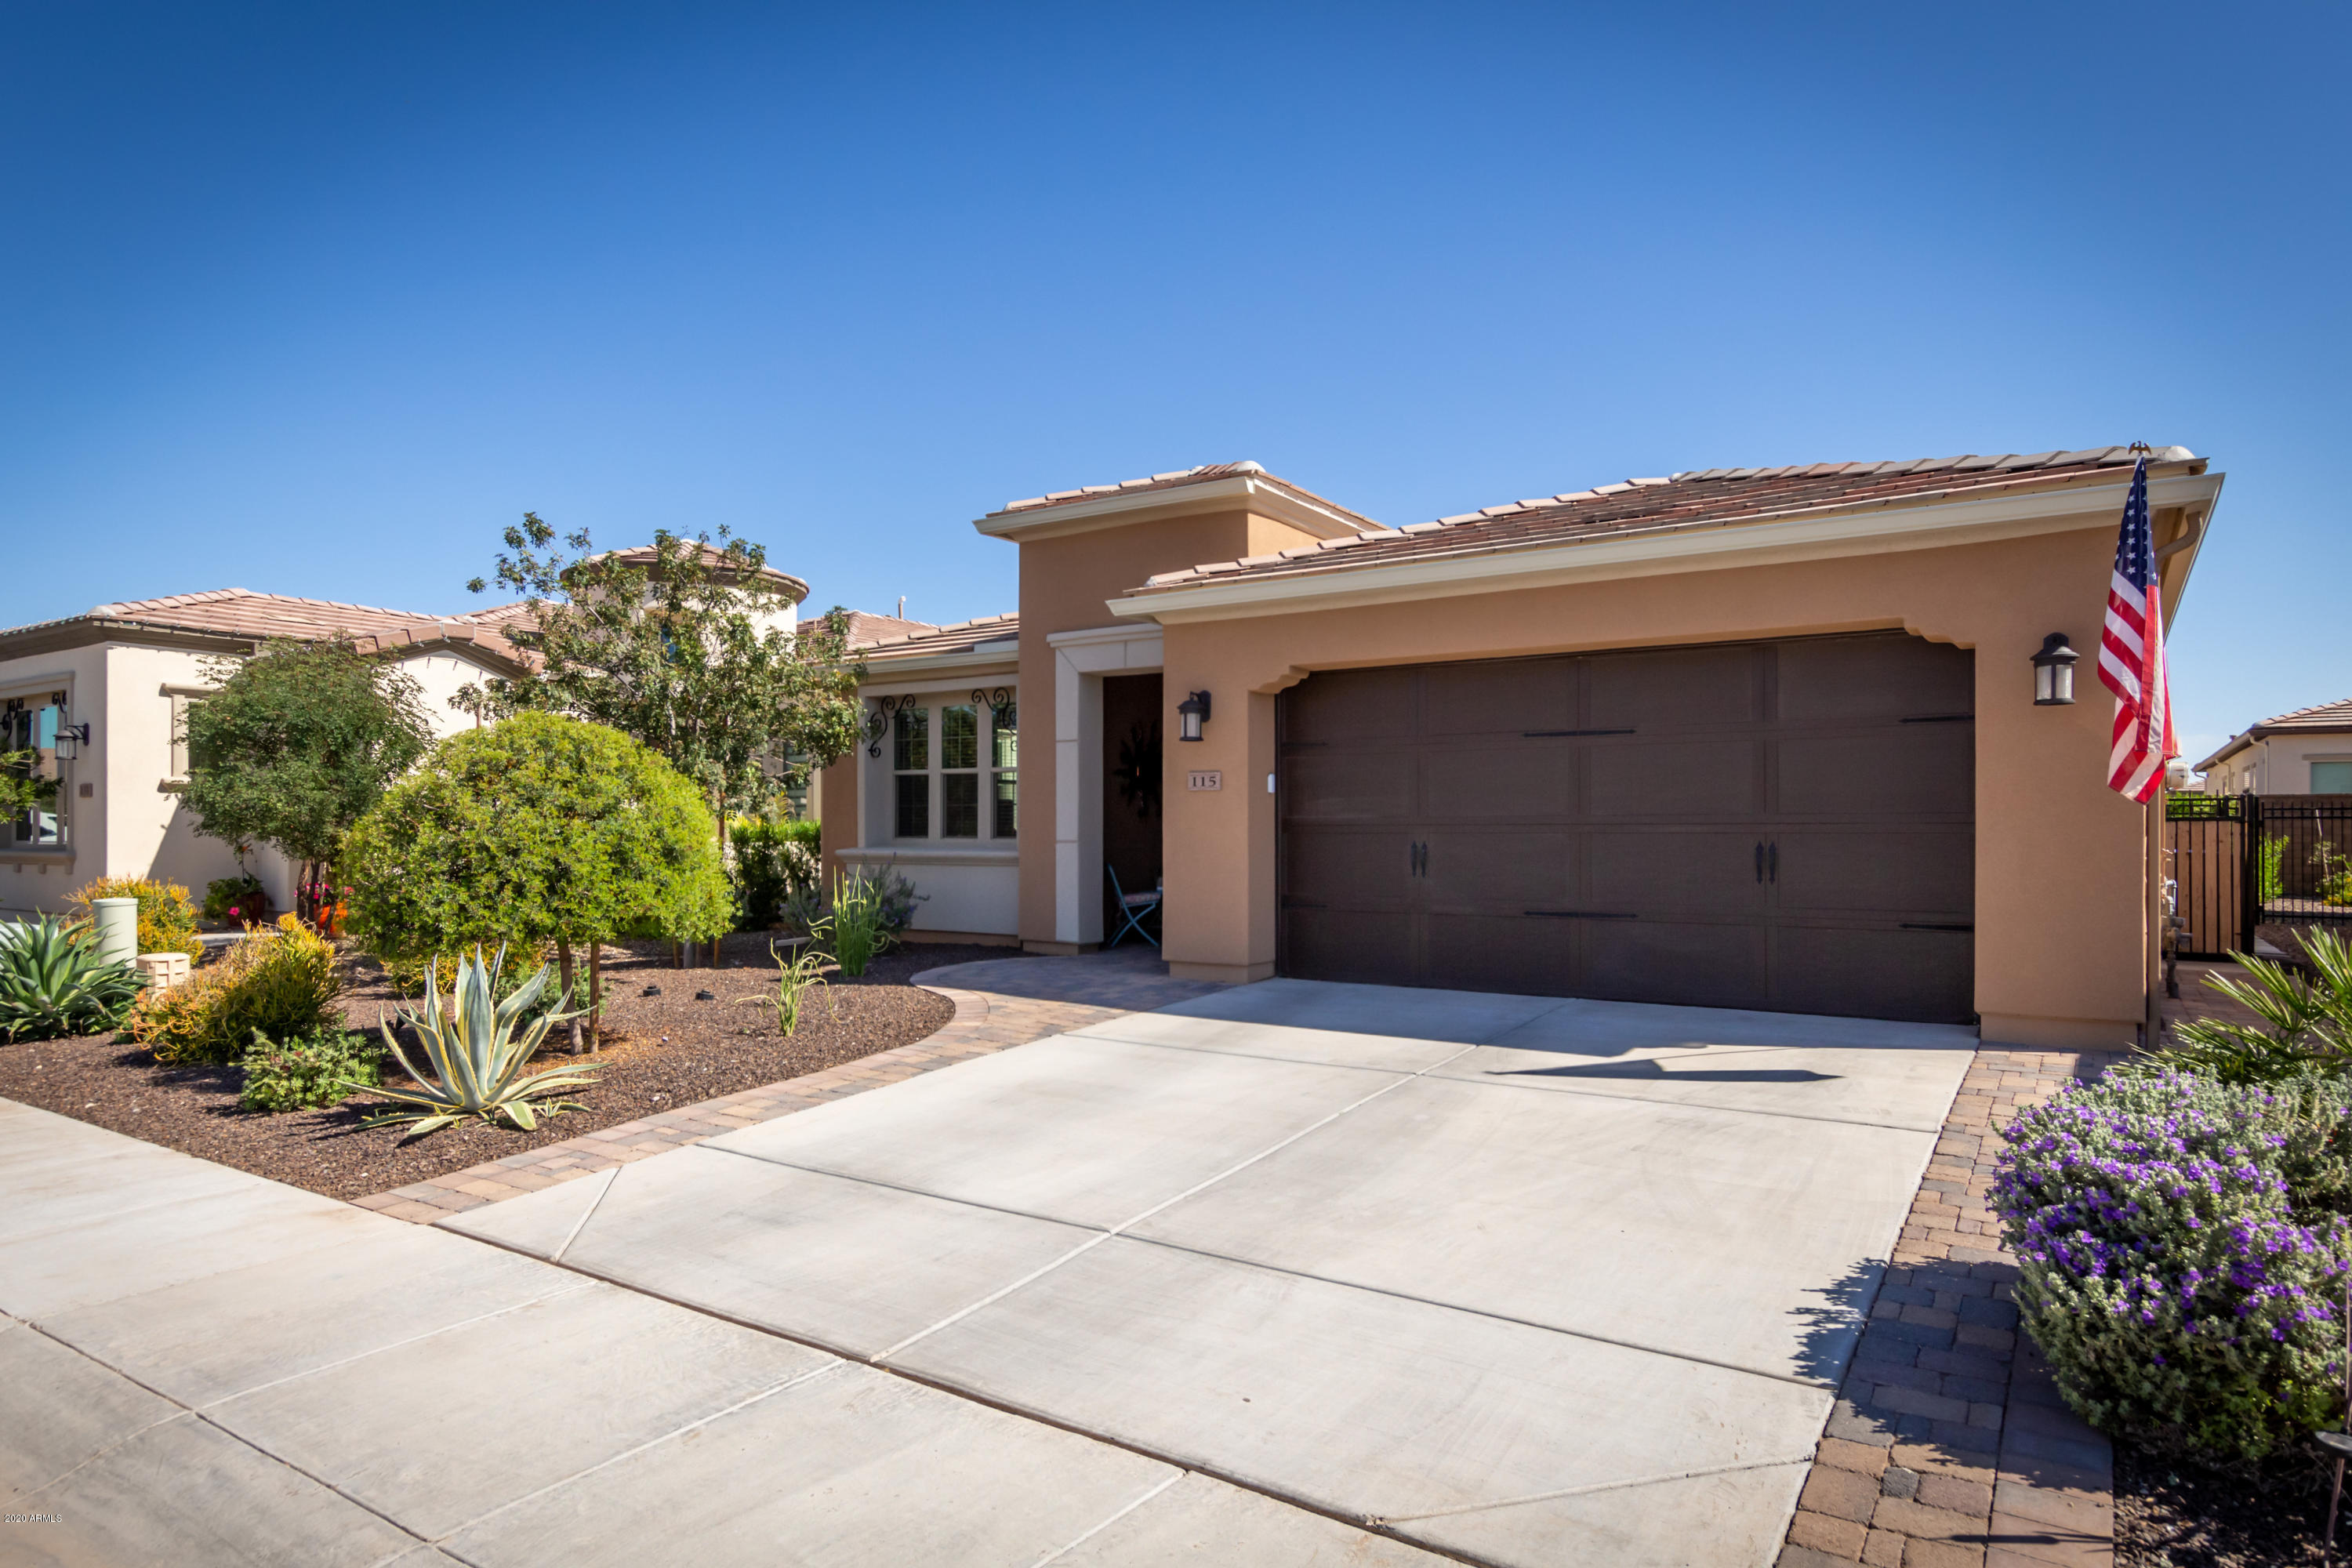 Photo of 115 E ATACAMA Lane, San Tan Valley, AZ 85140